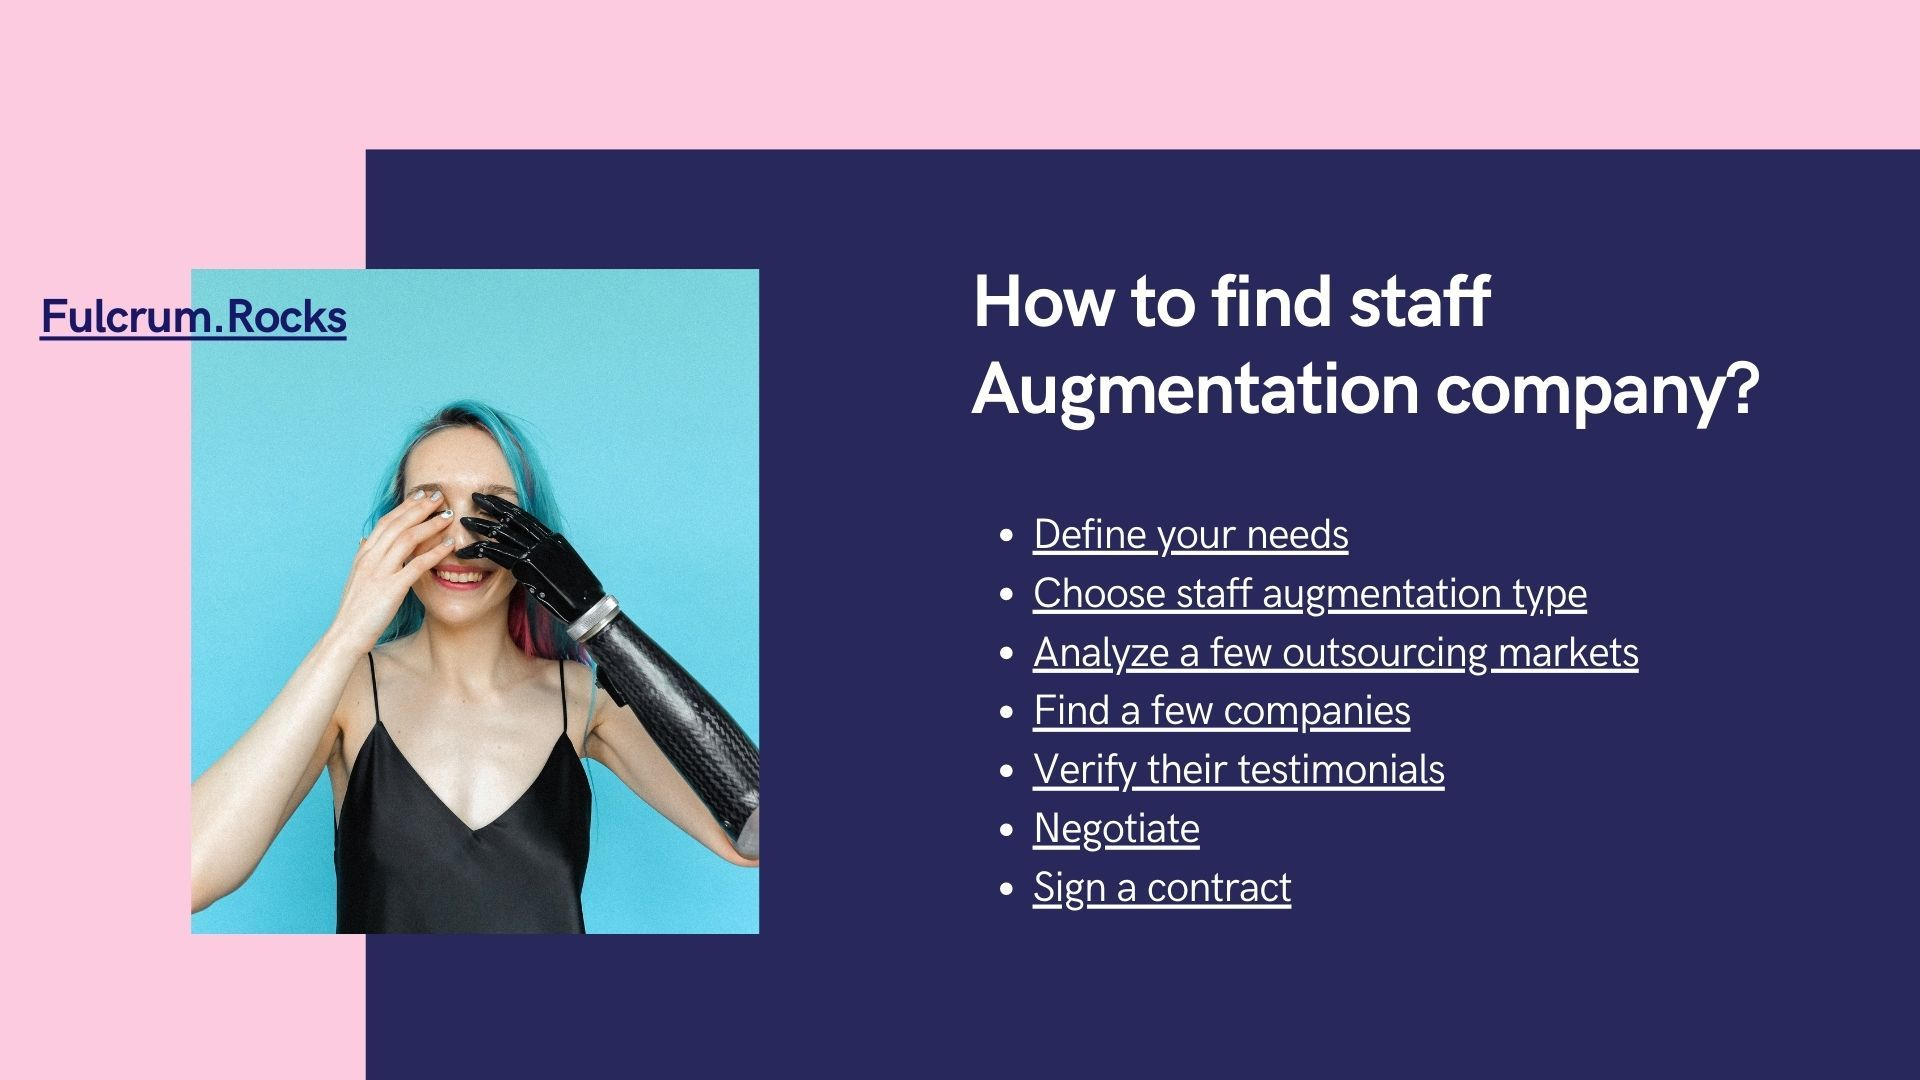 How to find staff augmentation company?